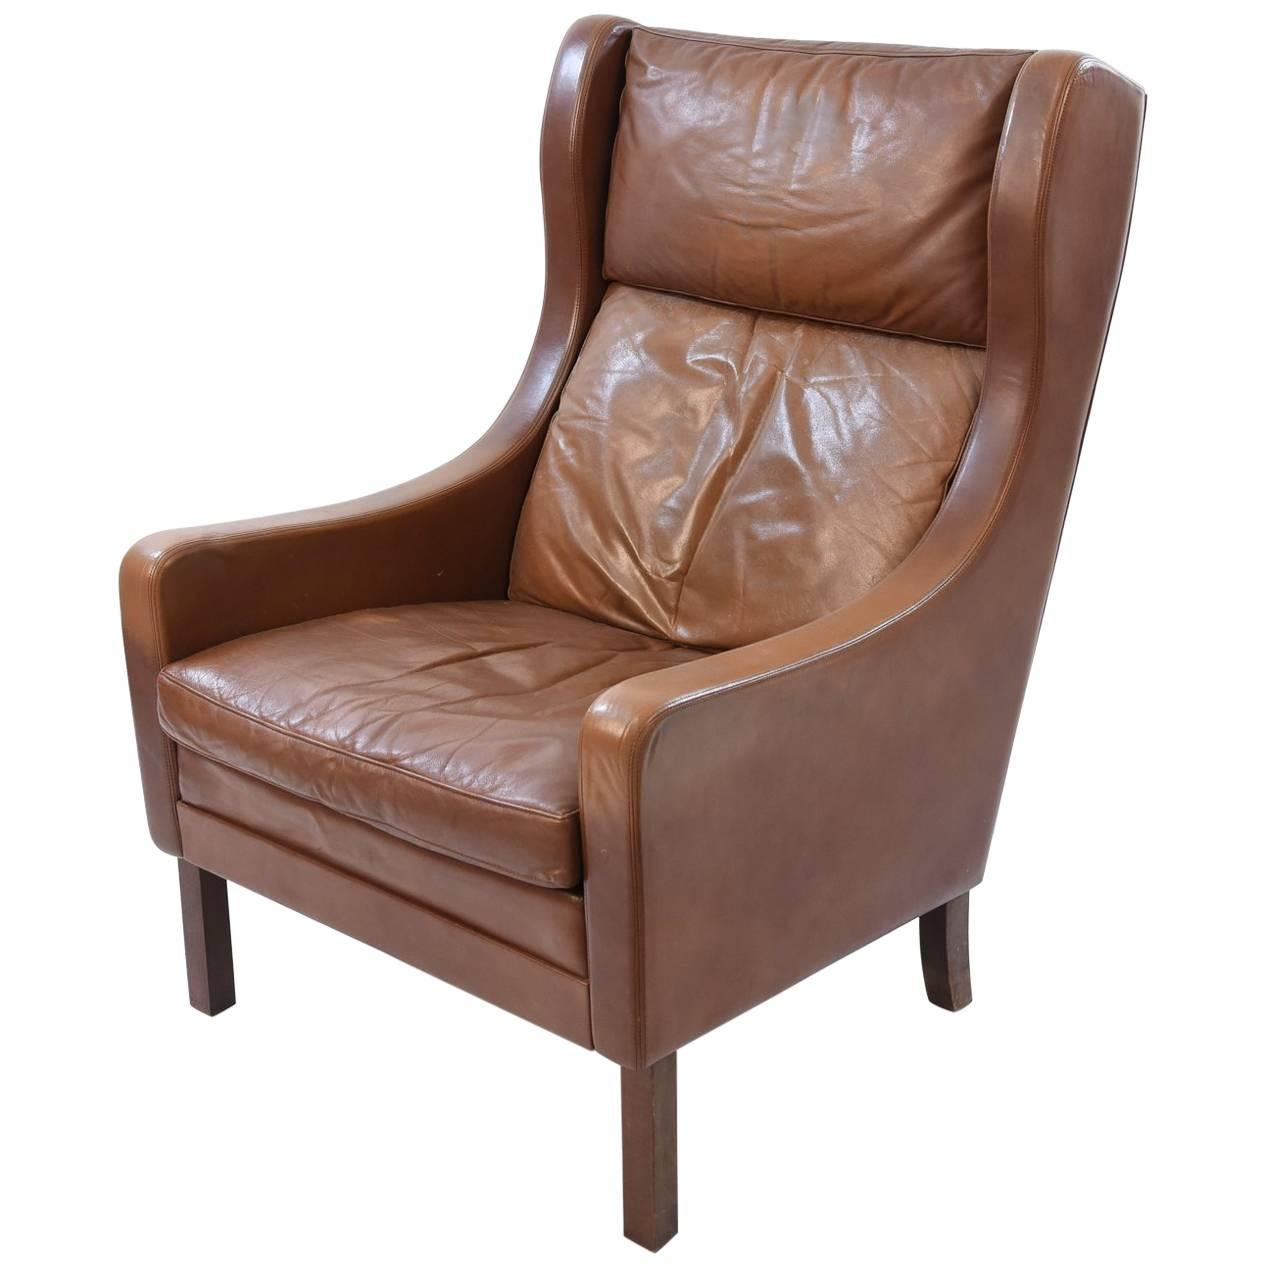 Brge Mogensen Danish 1960s Leather Wingback Lounge Chair